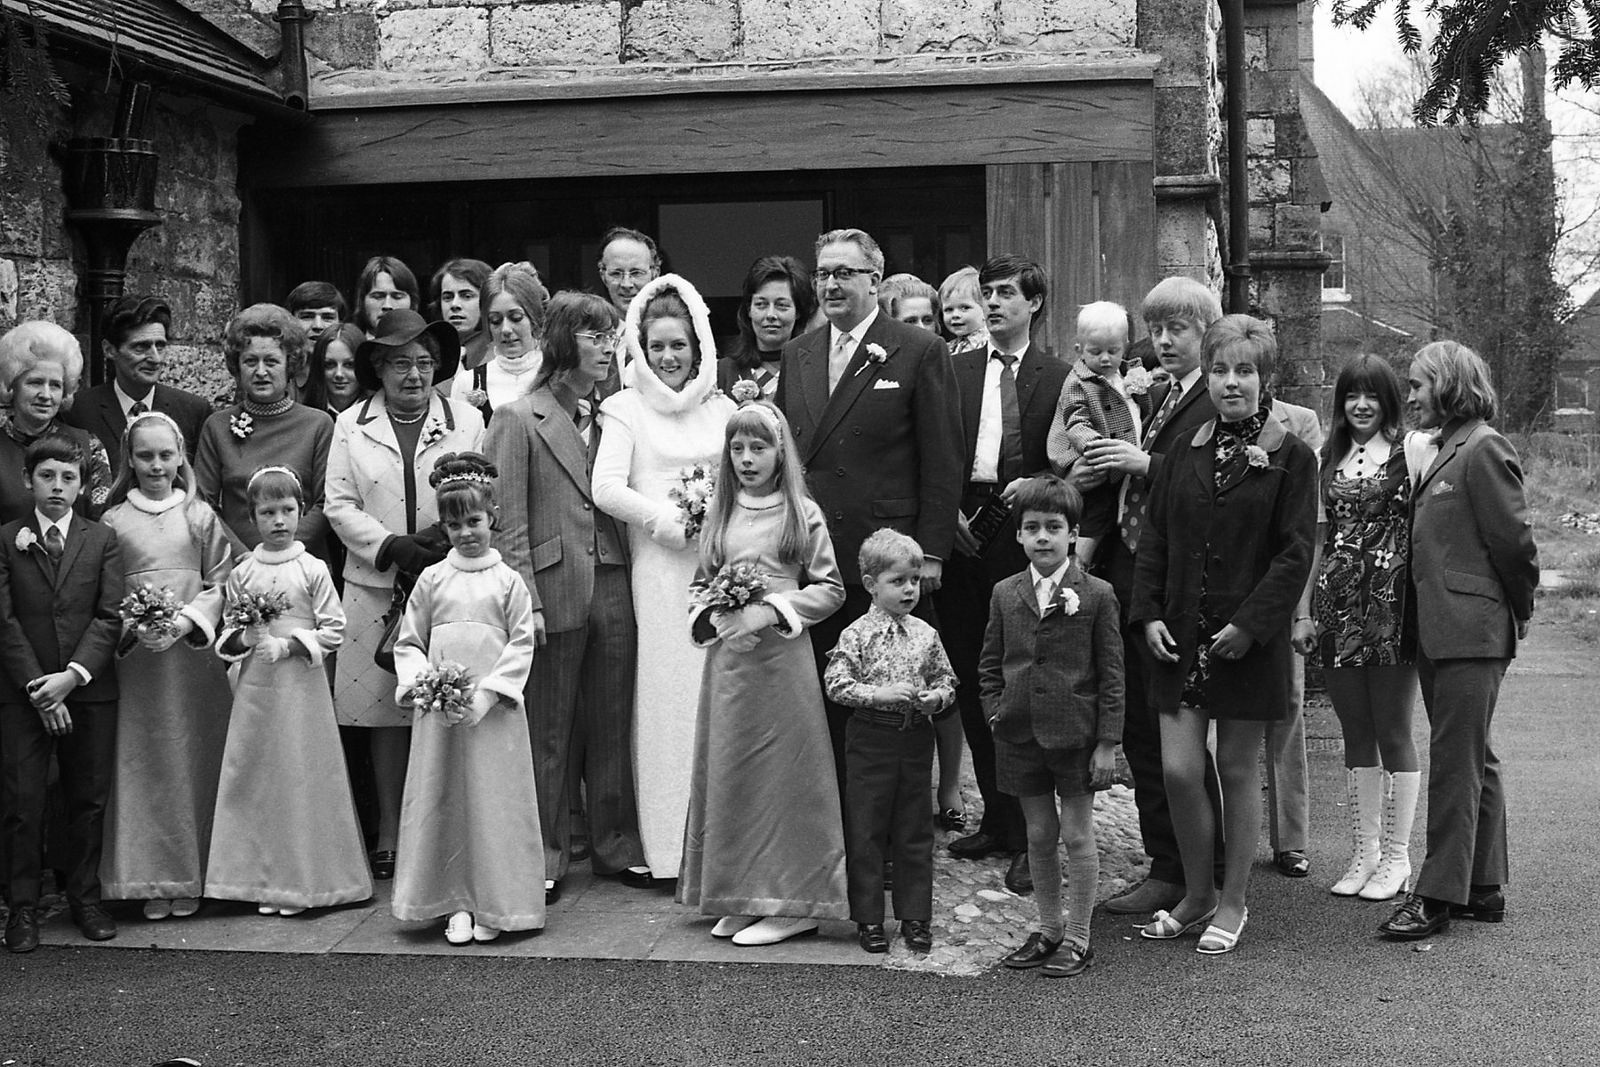 wedding1972eastleighthampshireukweddingsnapshots